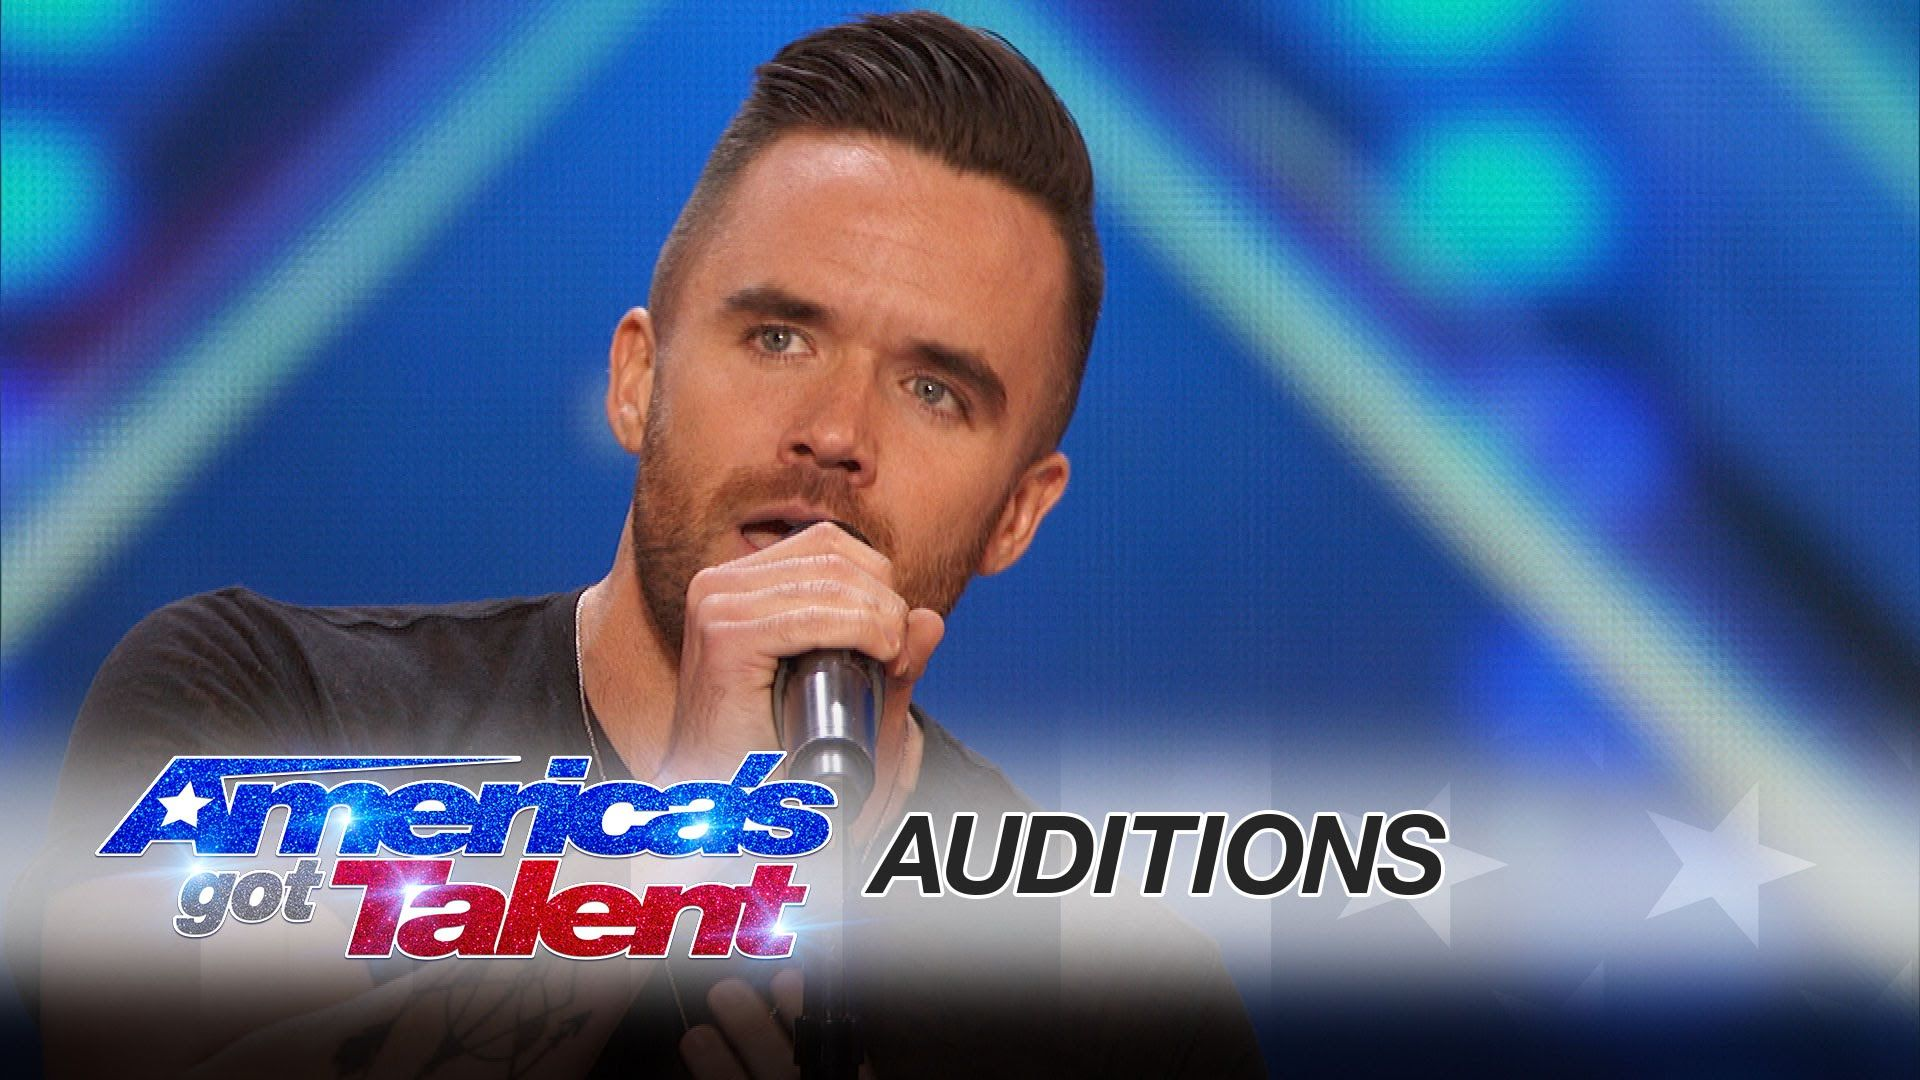 Americas got talent 2017 gospel choir - Brian Justin Crum Singer Gets Standing Ovation With Powerful Cover America S Got Talent 2016